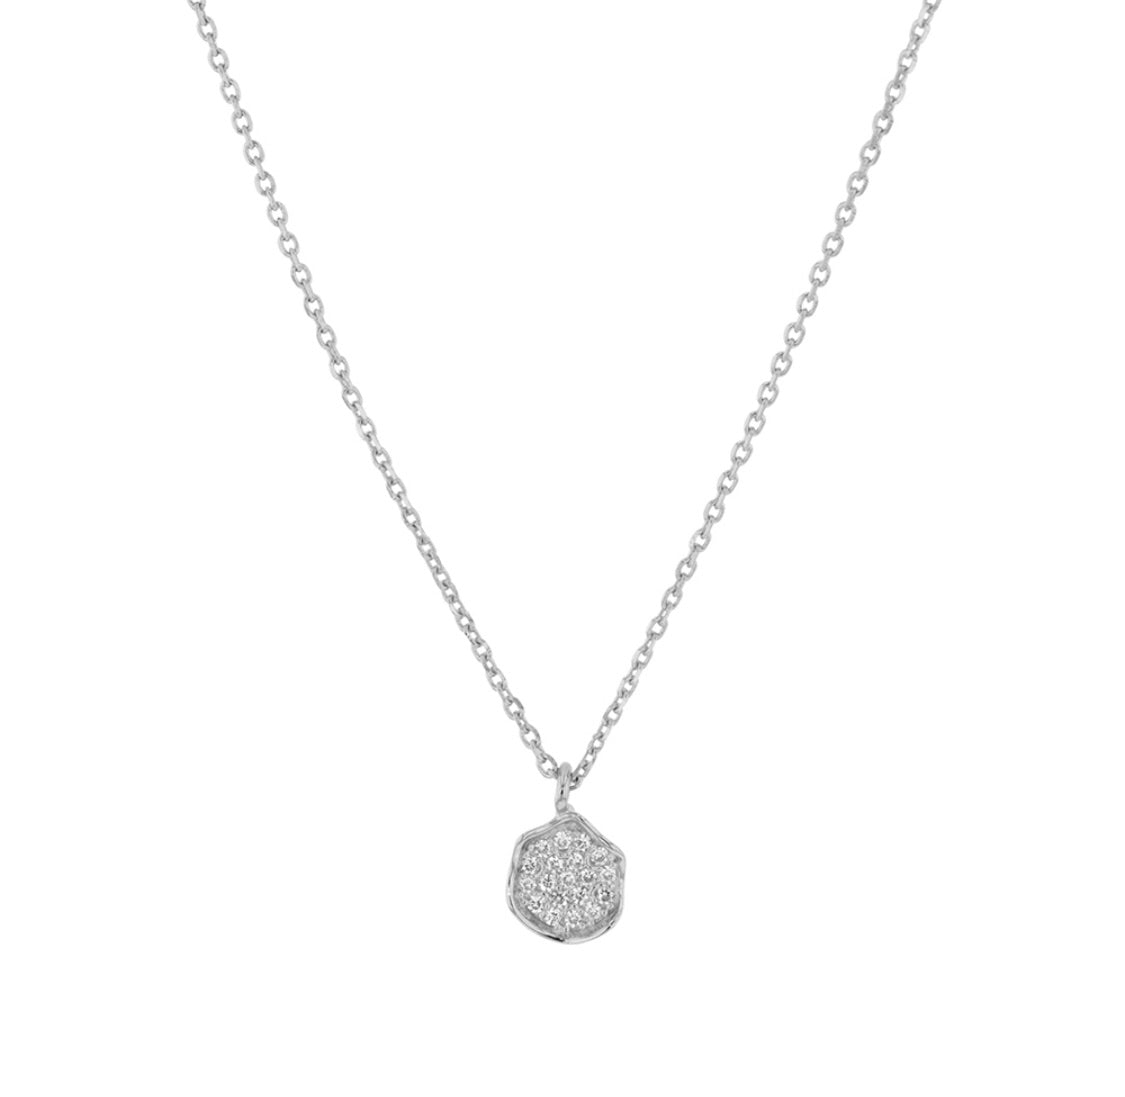 Jolie and Deen Tarryn Crystal necklace